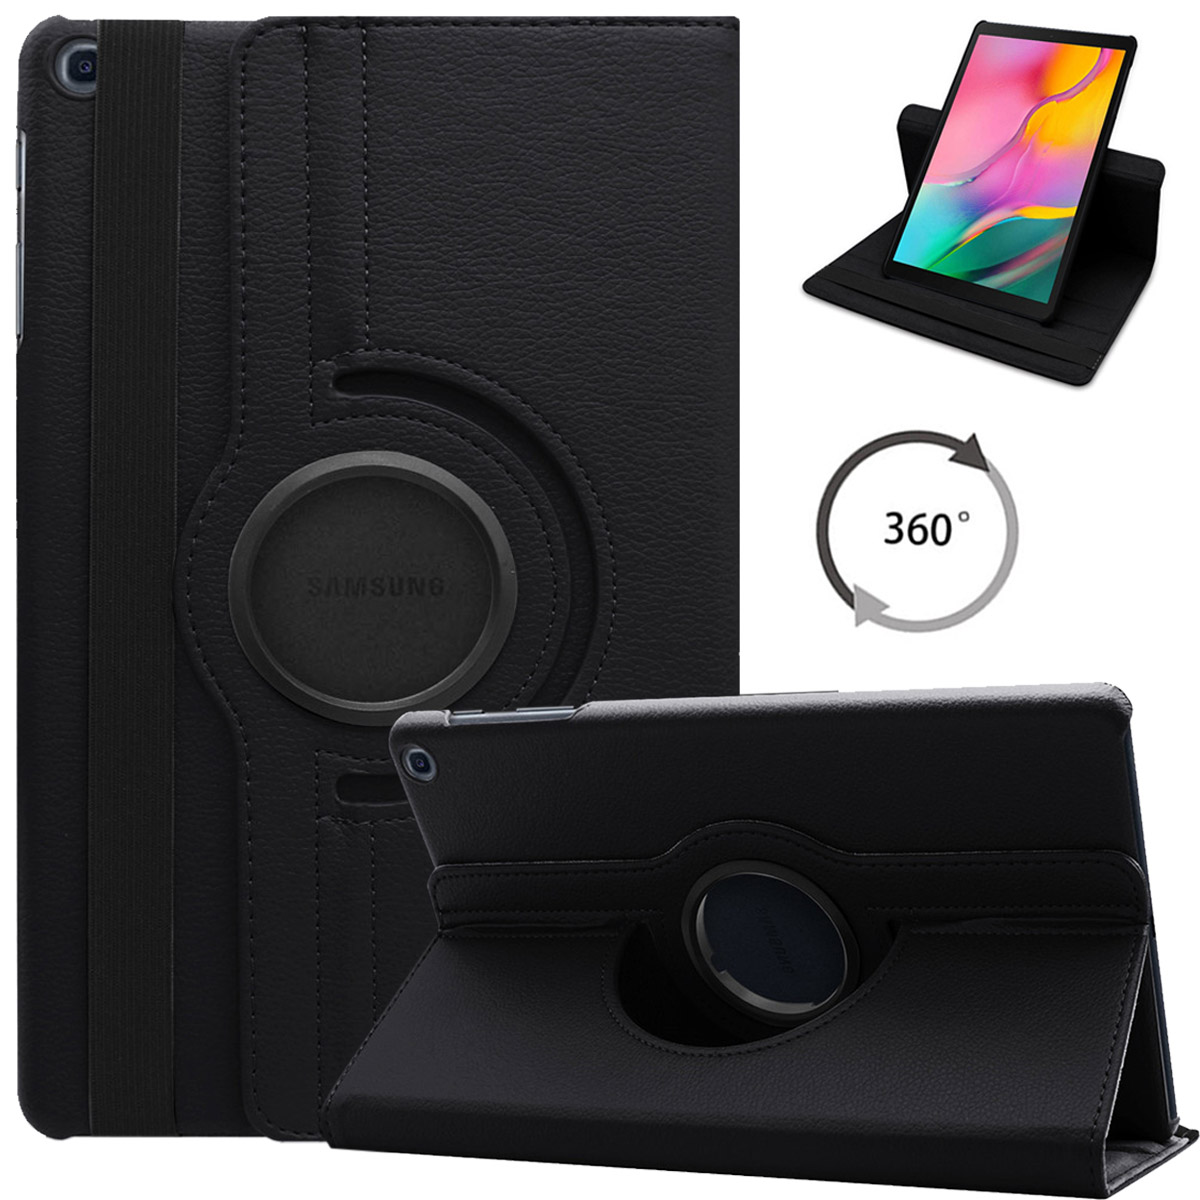 For Samsung Galaxy Tab S6 Lite Case, 360 Degree Rotating Stand Tablet Cover For Galaxy Tab S6 Lite 10.4 2020 SM-P610 SM-P615